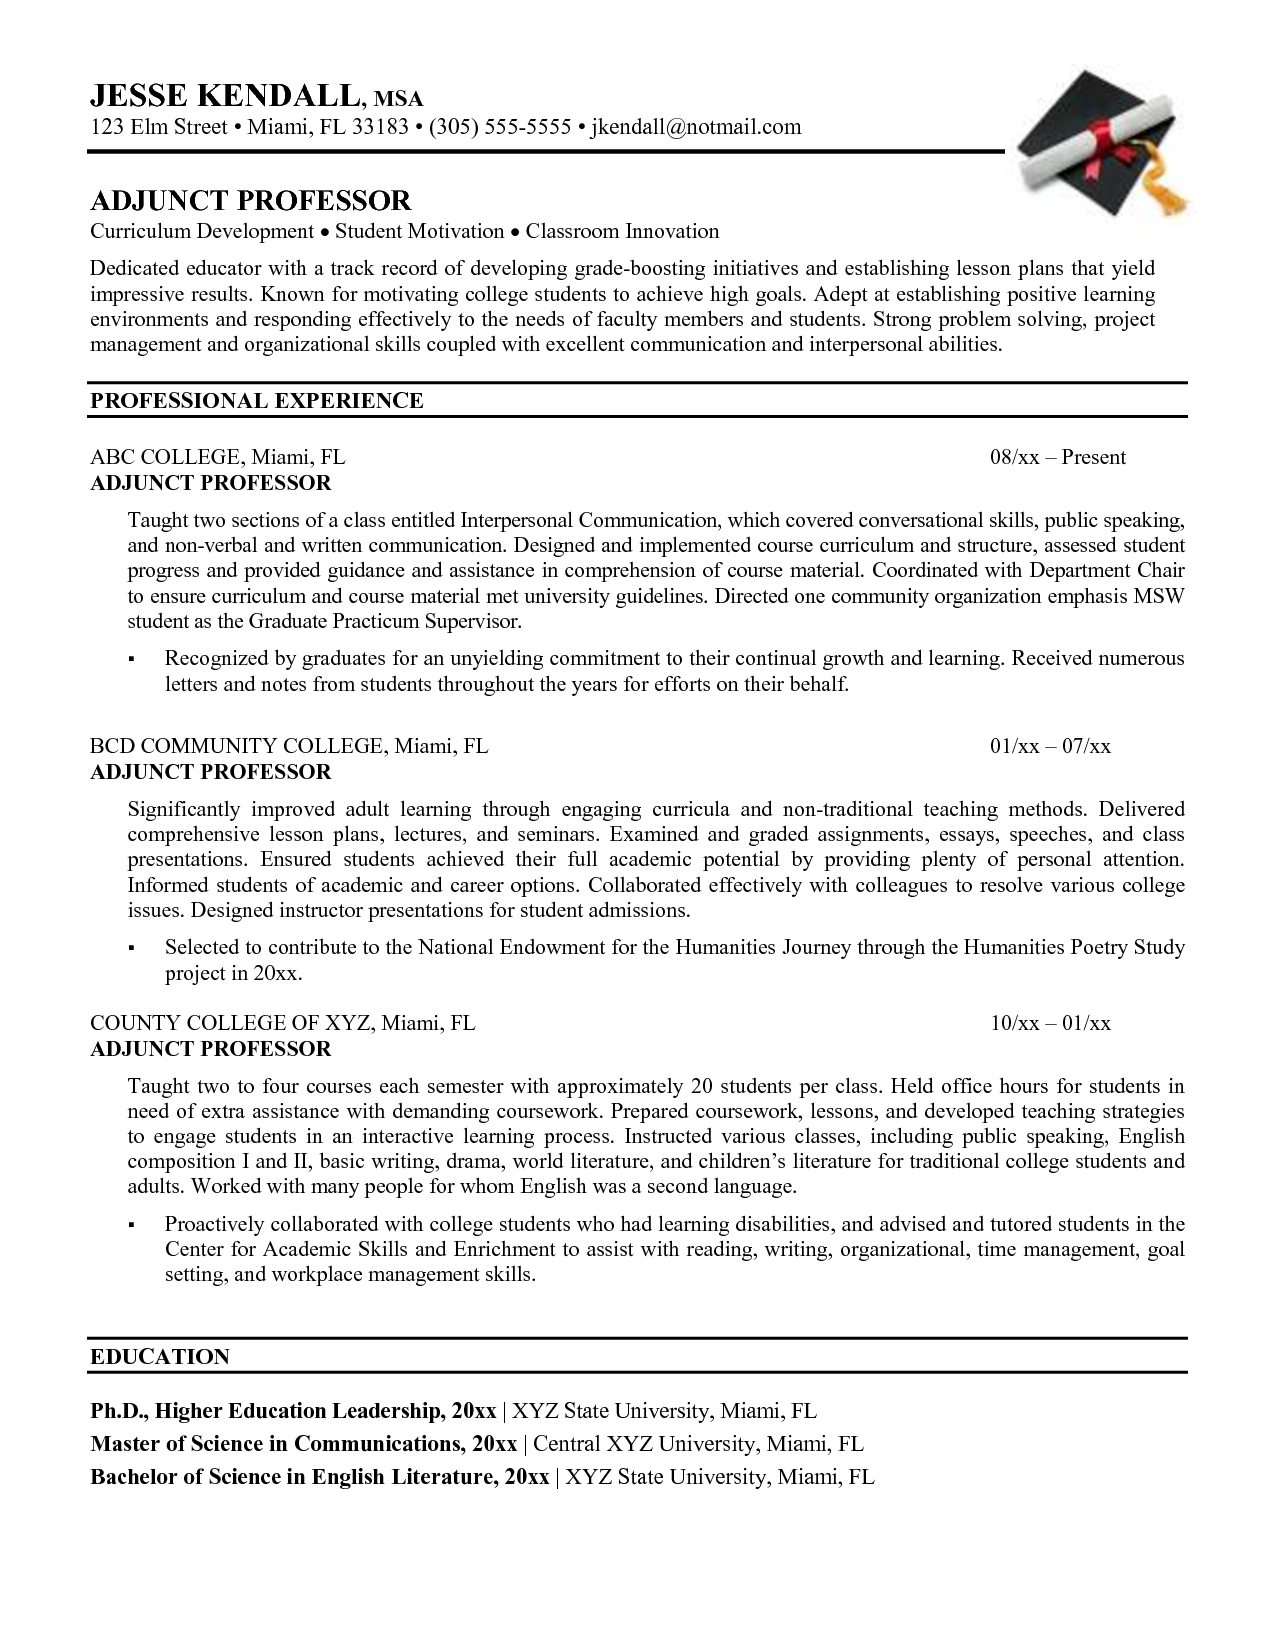 Sample resume for faculty position engineering adjunct professor sample resume for faculty position engineering adjunct professor resume best template collection madrichimfo Images